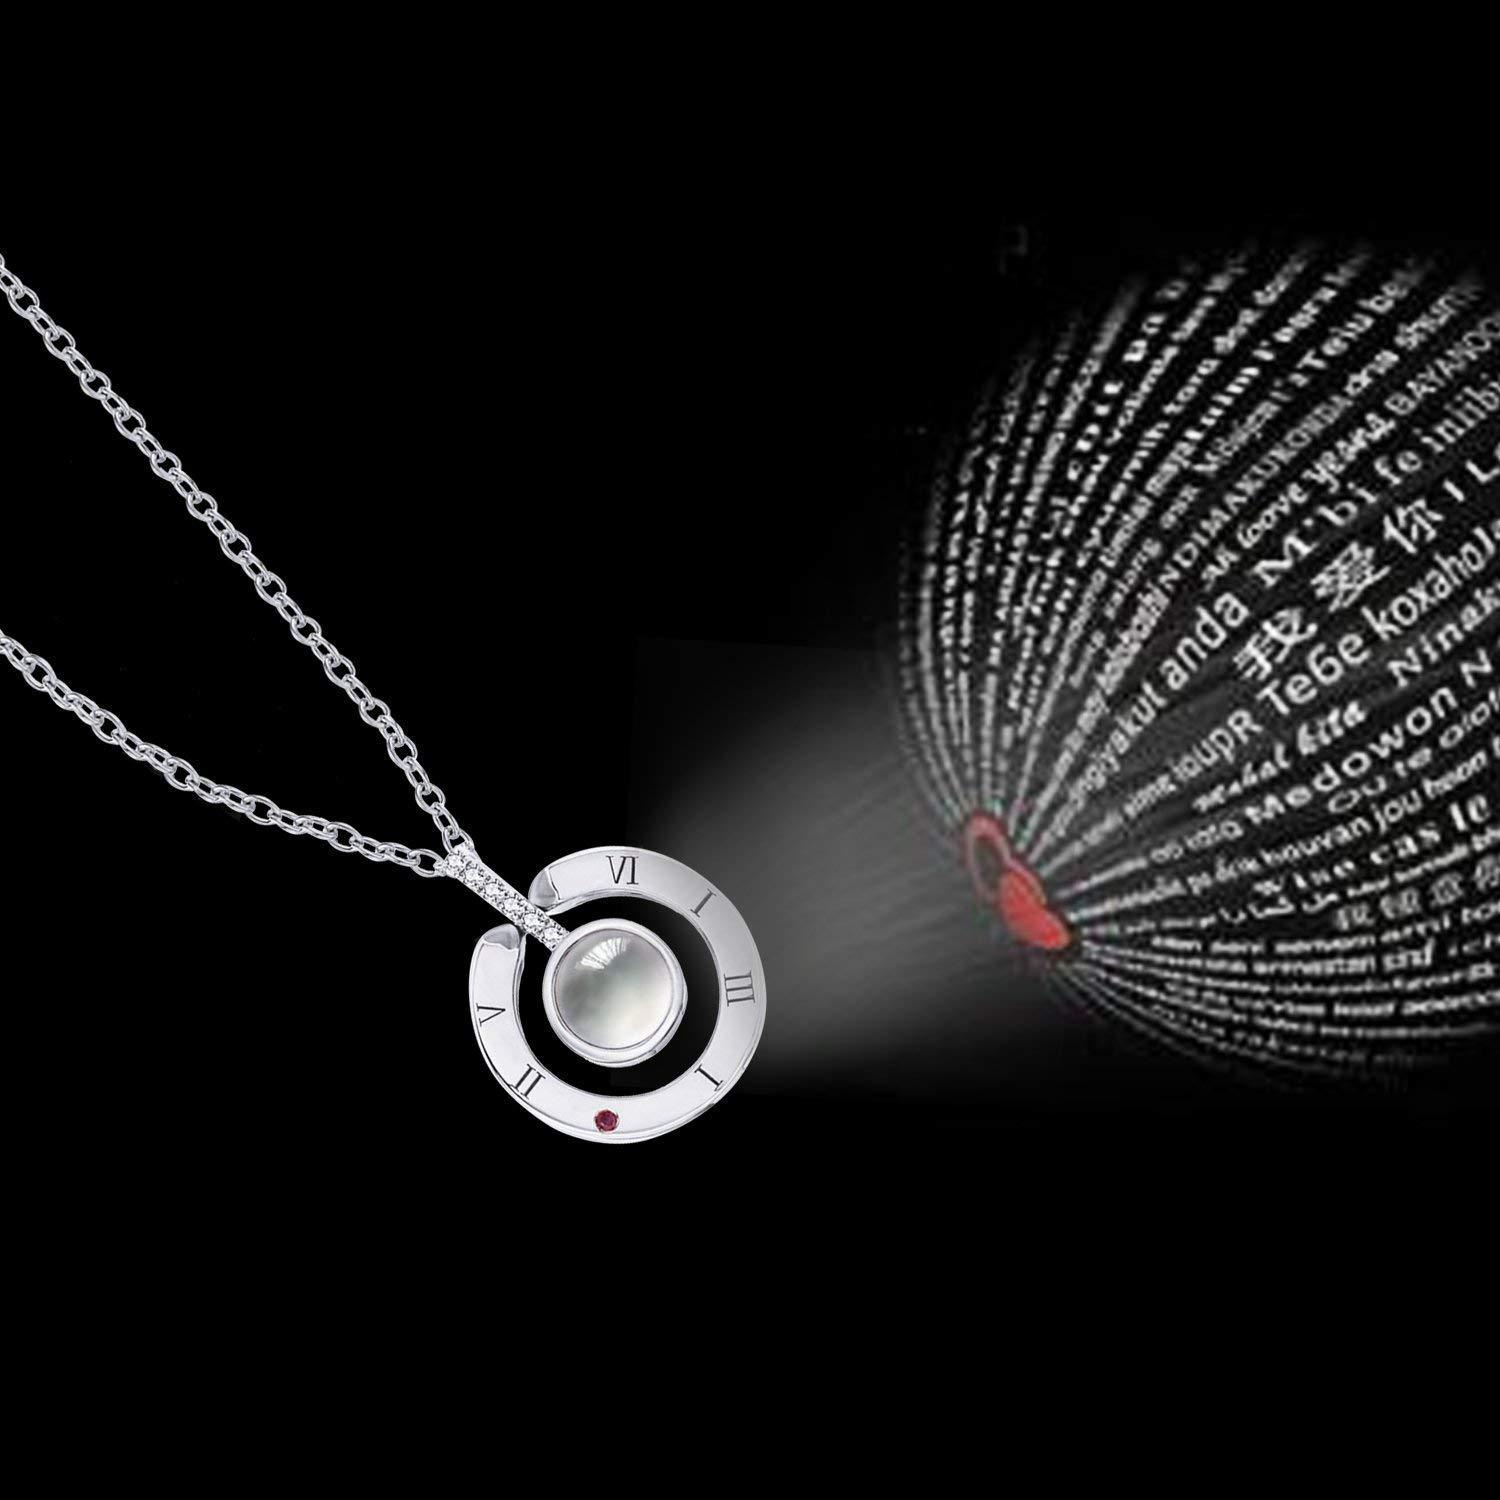 Projector Necklace 11